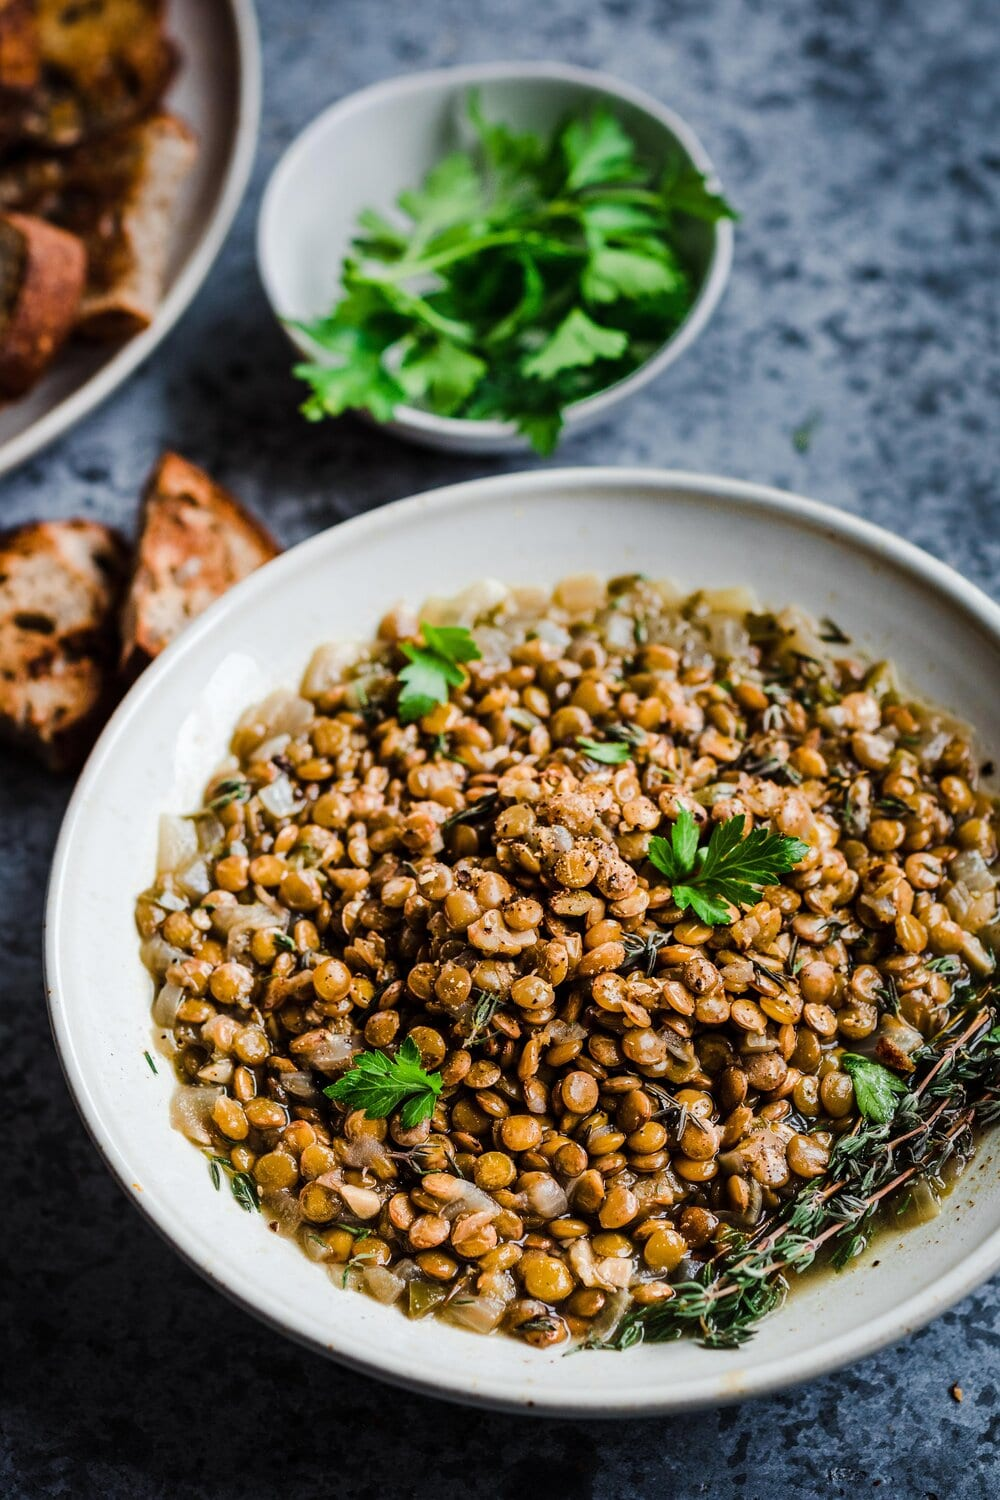 bowl of brown lentils cooked in the instant pot, flavored with parsley and thyme.